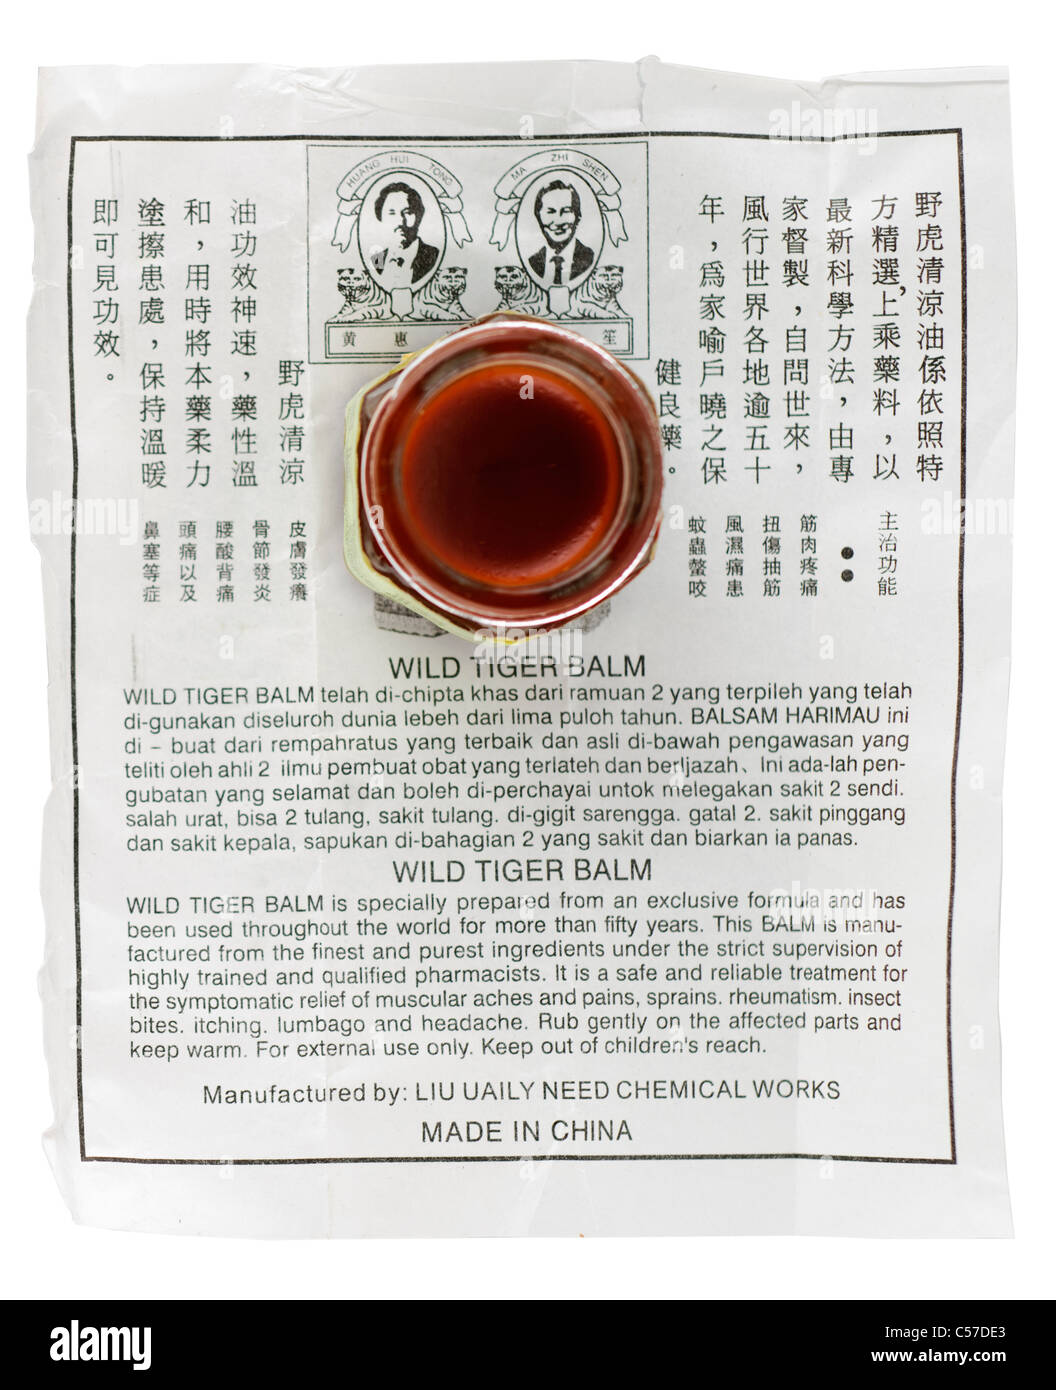 Jar of Wild Tiger balm and instructions manufactured by Liu Uaily Need Chemical Works in China. EDITORIAL ONLY - Stock Image